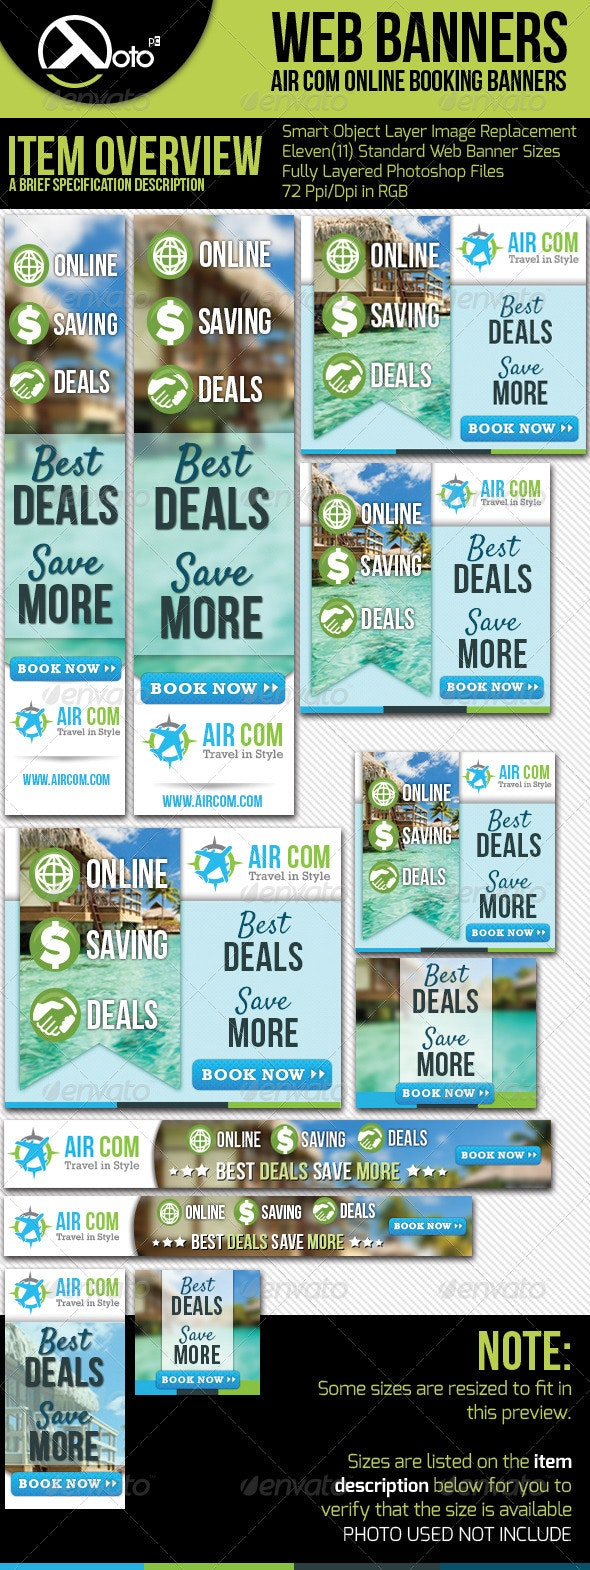 Online Booking Travel Web Banner - Banners & Ads Web Elements